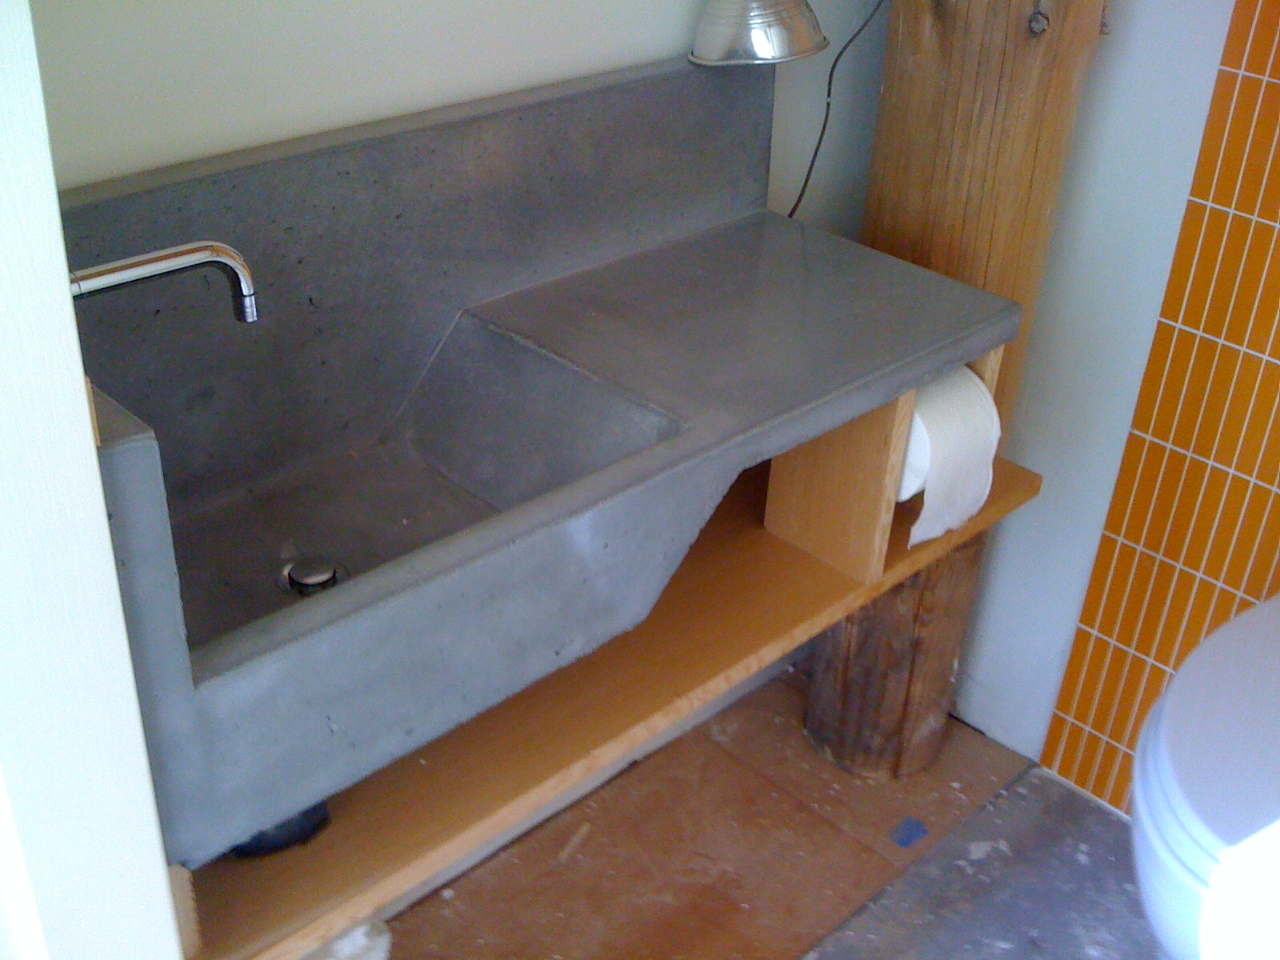 First Concrete Vanity Sink Installed! – collaboration & fabrication